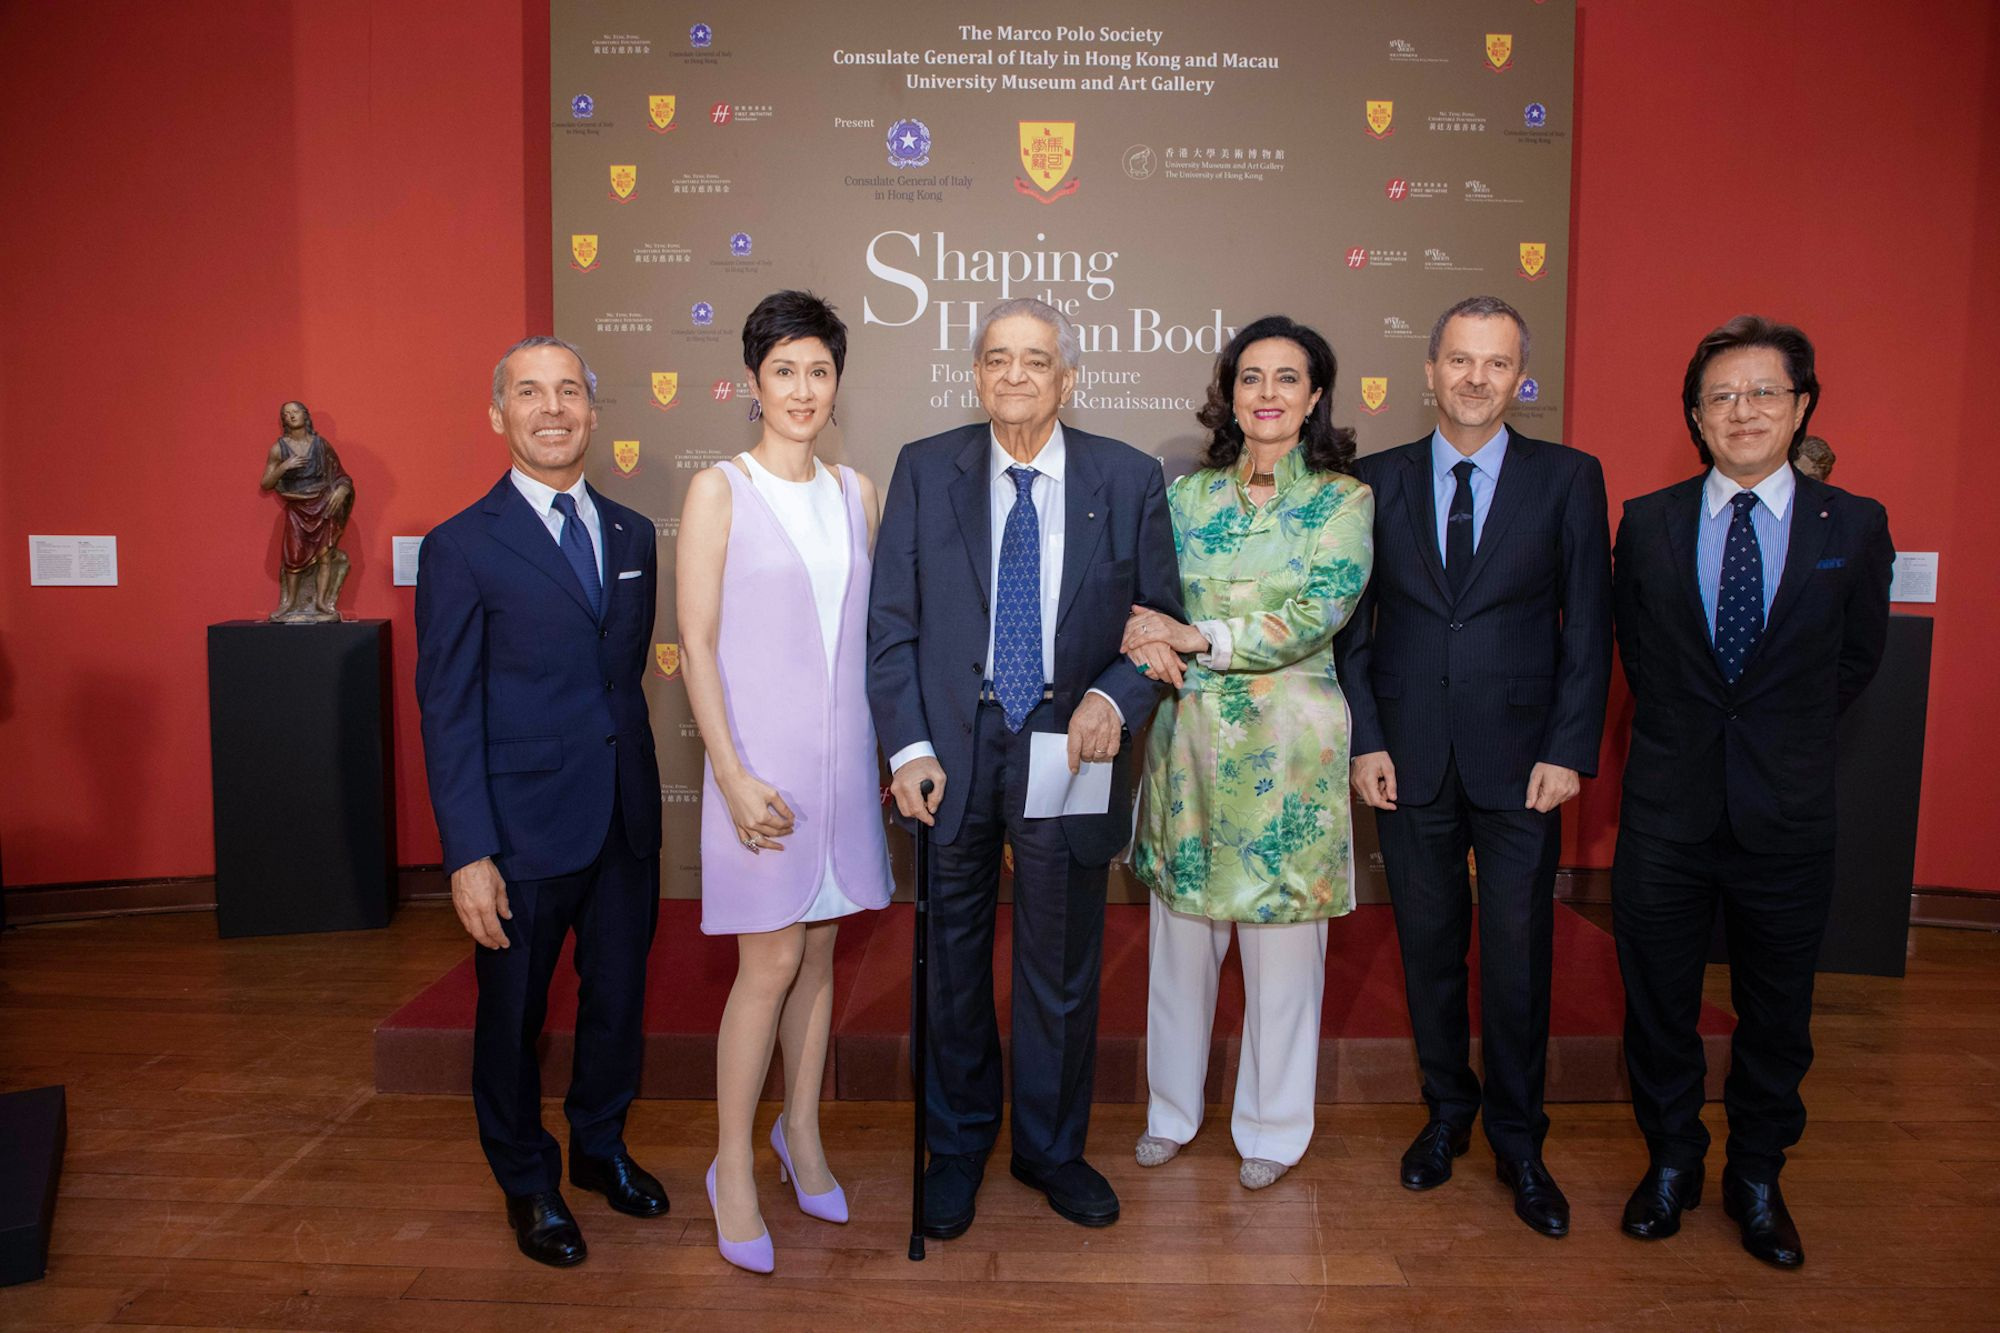 William Figliola, Michelle Ong, Luigi Bellini, Francesca Bellini, Antonello De Riu, Richard Lee